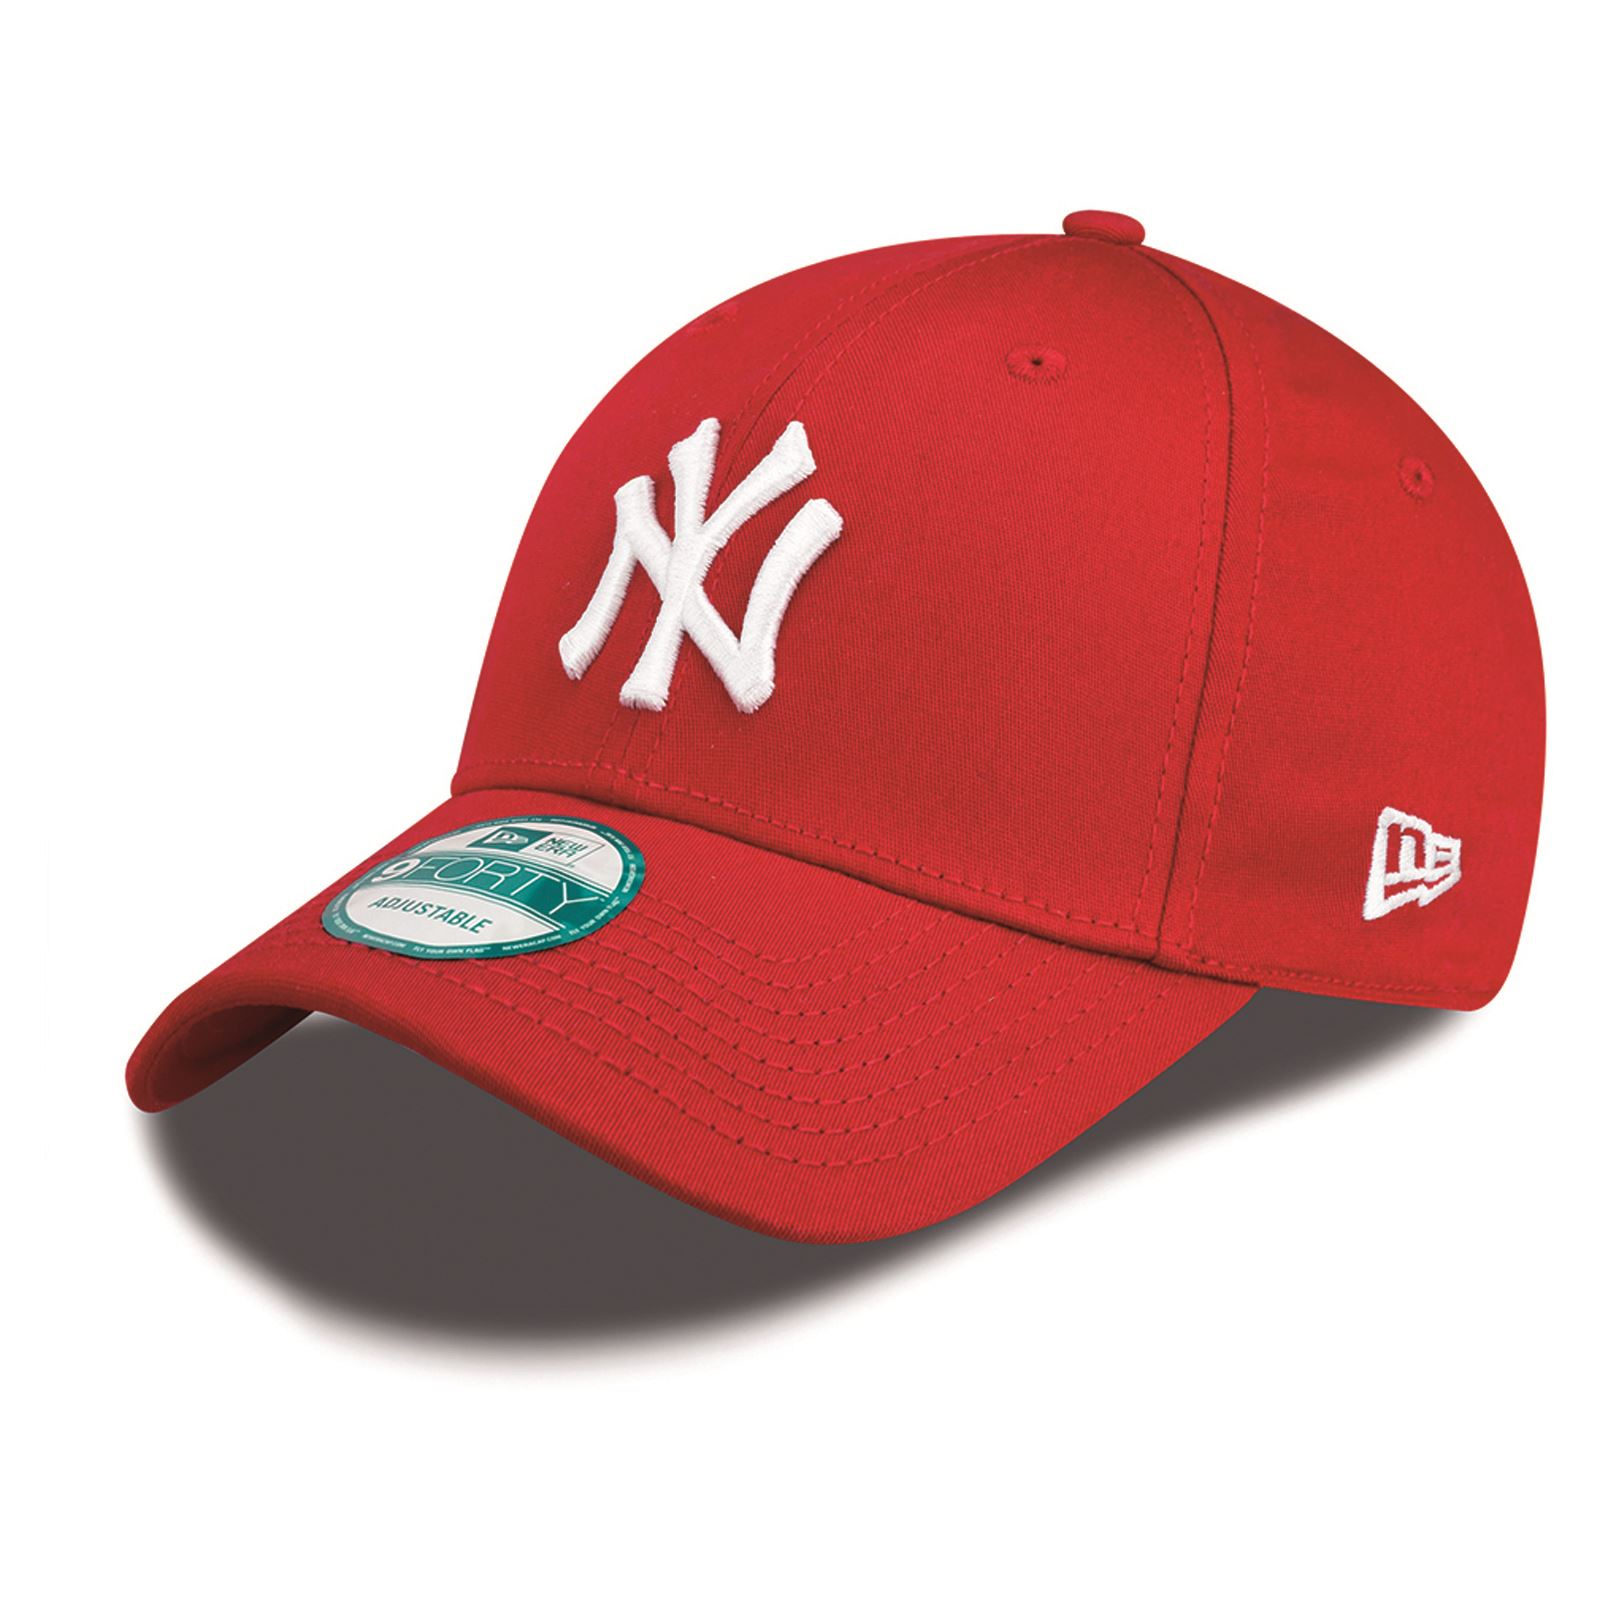 new era new york yankees casquette rouge brandalley. Black Bedroom Furniture Sets. Home Design Ideas